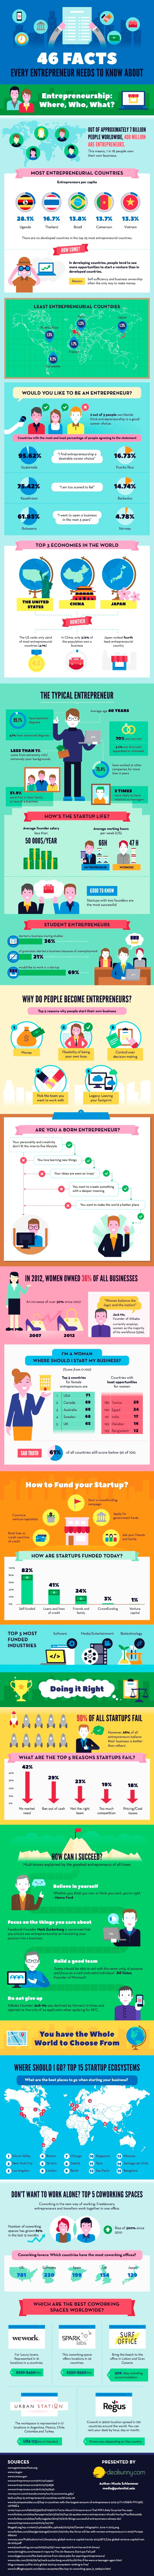 entrepreneurship-infographic (1) (1)